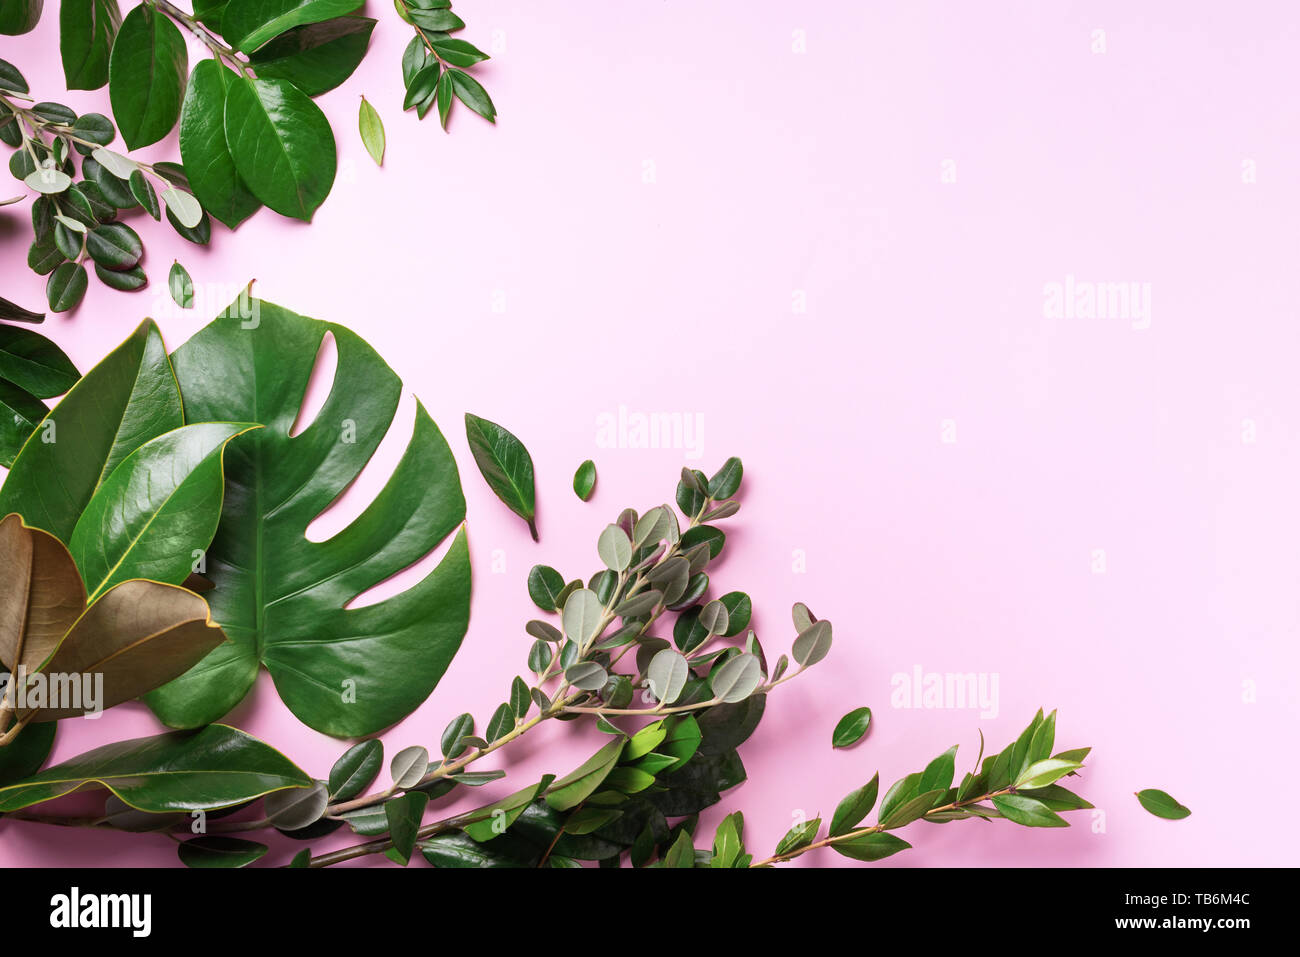 Creative Layout Made Of Tropical Green Leaves On Pink Background Flat Lay Top View Summer Or Spring Nature Concept Blank For Advertising Card Or I Stock Photo Alamy Green plant leaf landscape canvas painting art a painting,an inspiration download premium illustration of rectangle golden frame on a tropical background by adj about. alamy